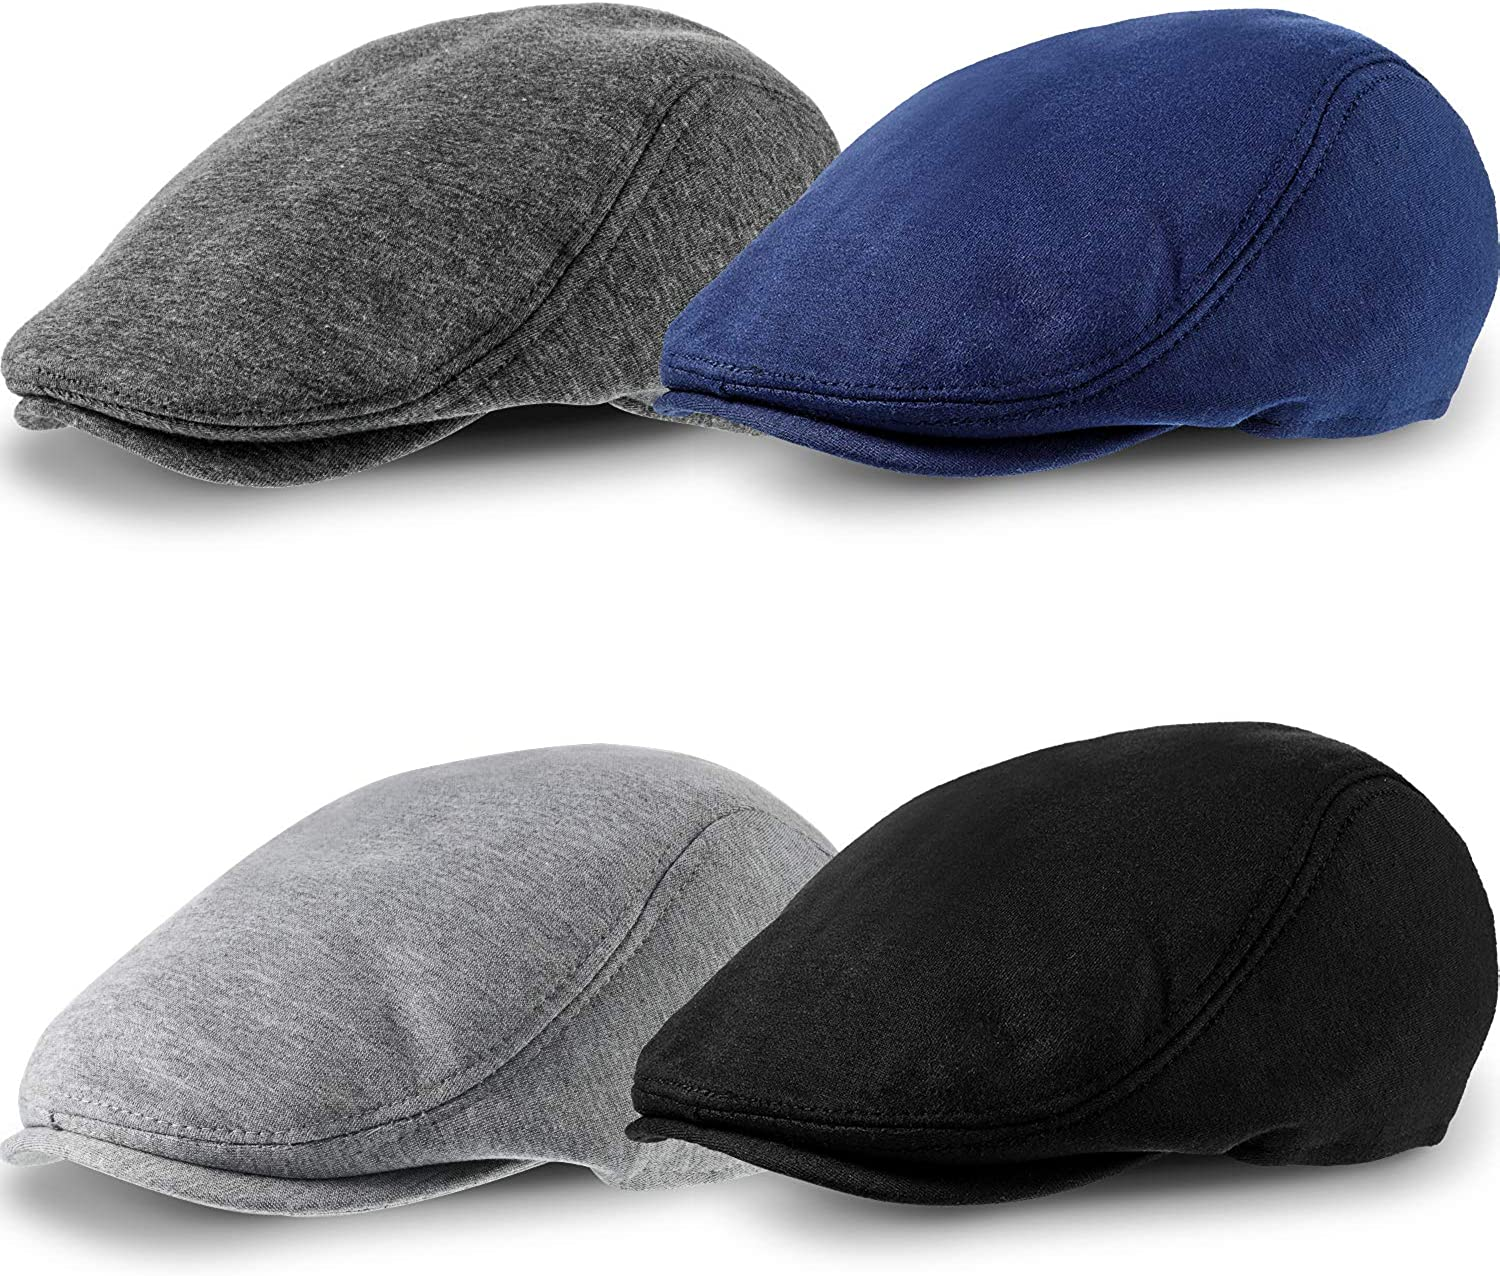 4 Pieces Mens Cotton Flat Cap Newsboy Hats Ivy Newsboy Hat Cabbie Hat Gatsby Hat